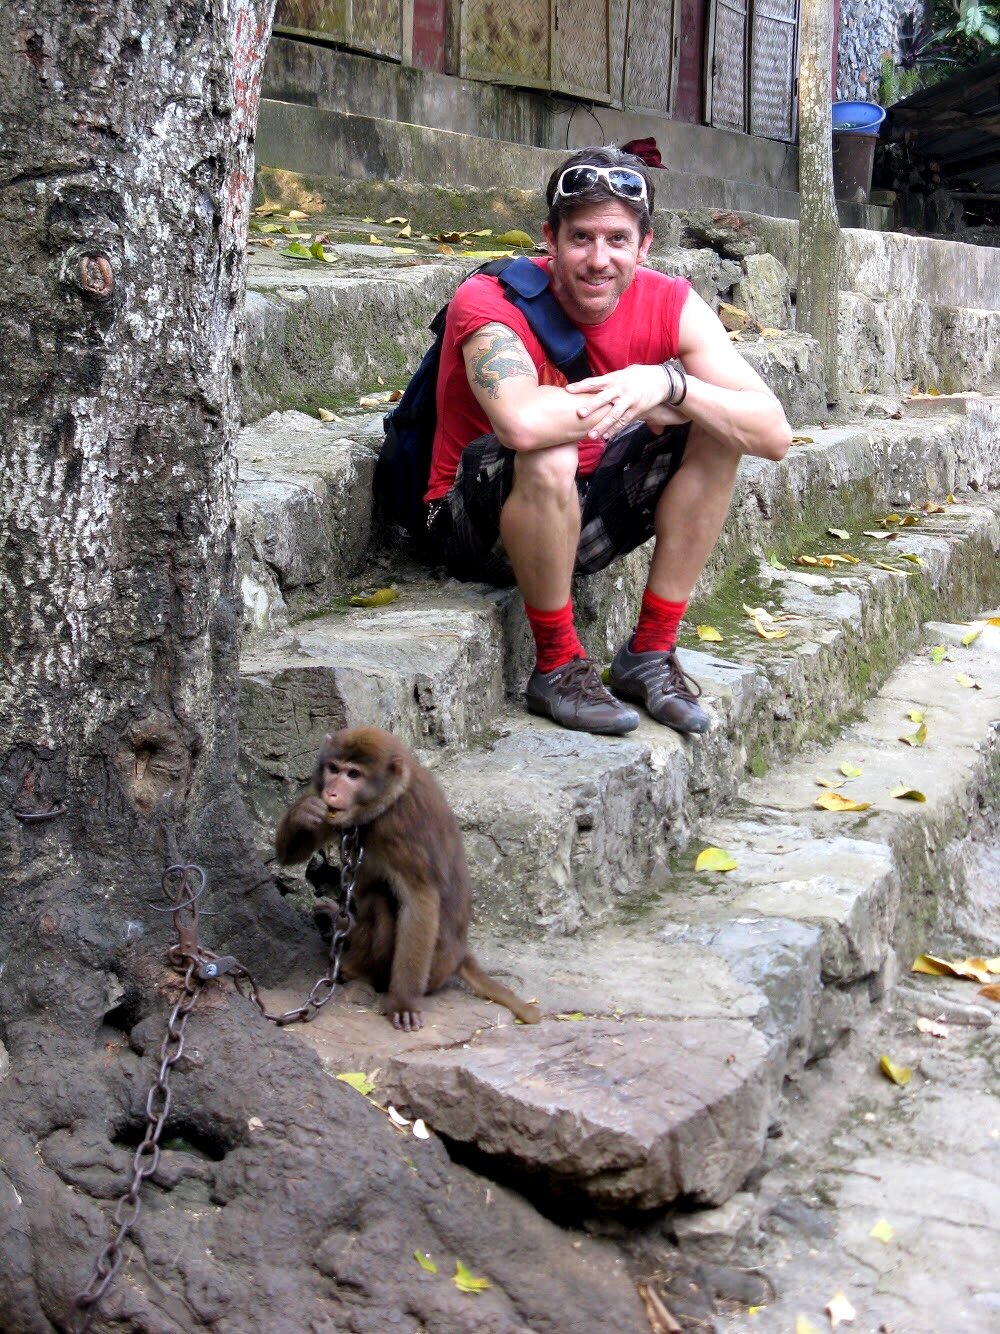 On the walk down, we passed a monkey on a chain. Duke claims he loves monkeys — but was terrified to get too close to this one. So it was Wally who posed (keeping a safe distance)